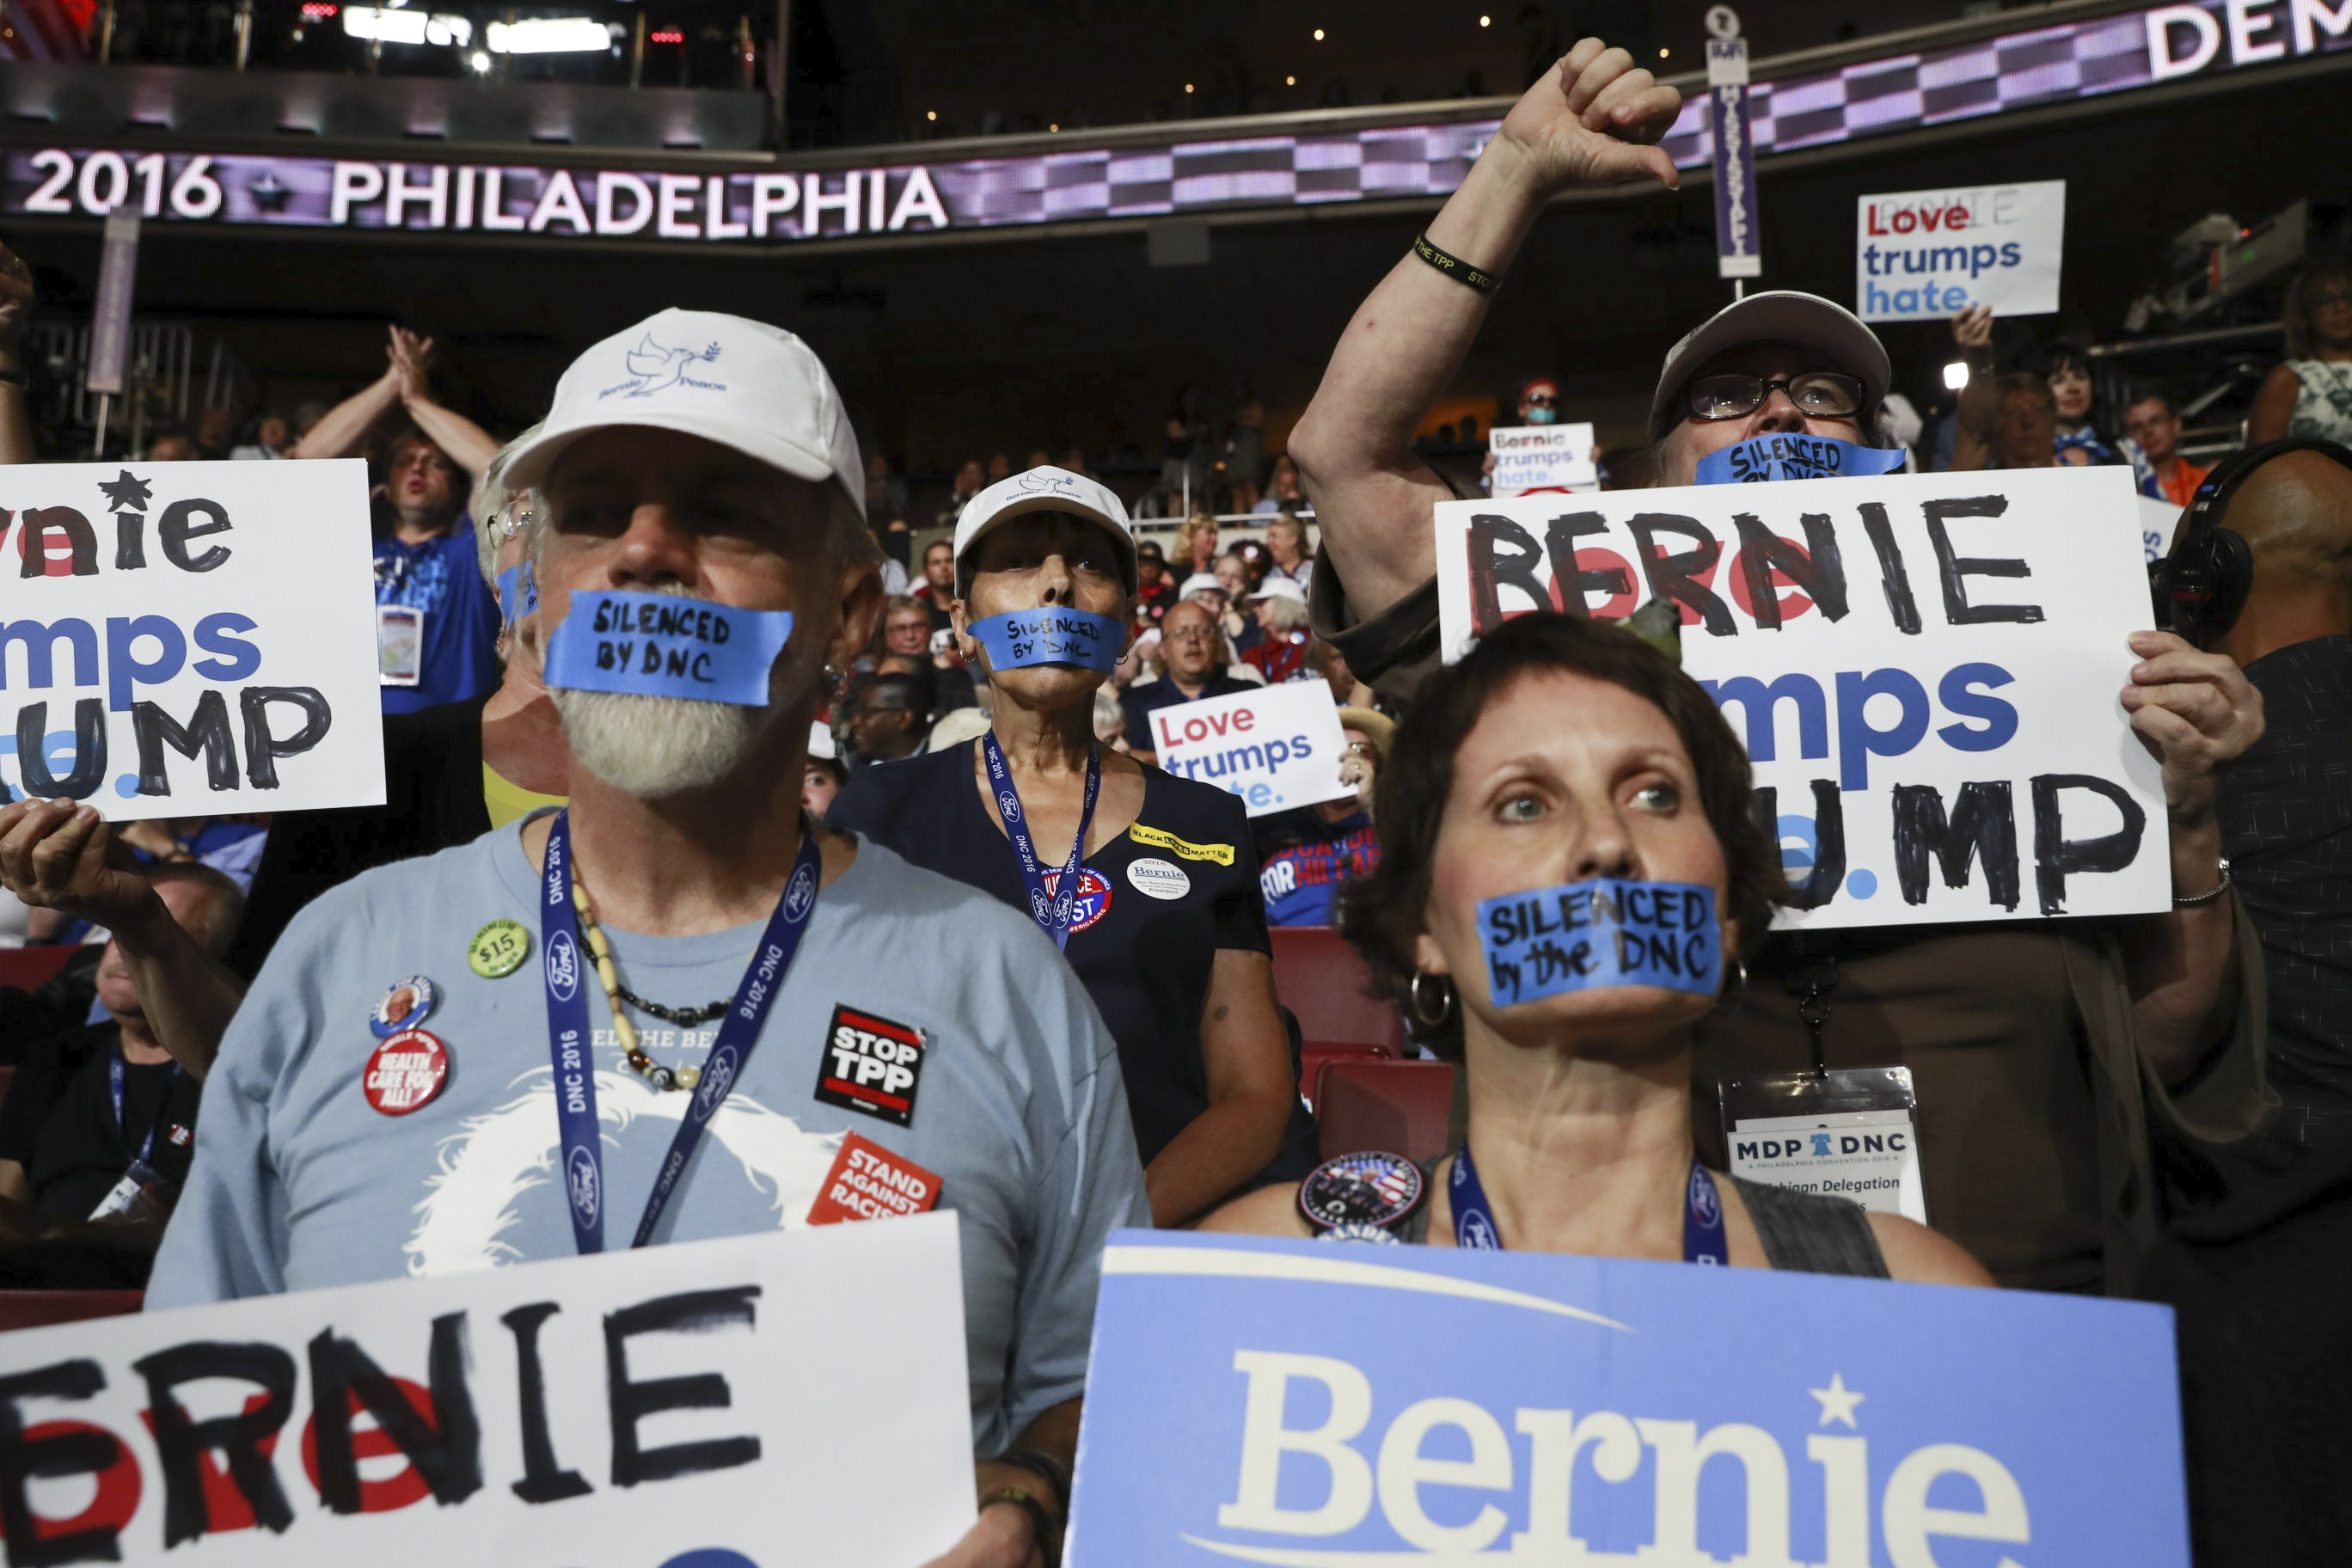 Supporters of Bernie Sanders silently protest at the Wells Fargo Center on the first day of the Democratic National Convention in Philadelphia. Later, they'd lead a boisterous 'No TPP' chant during the speakers' portion of the night. (Josh Haner/The New York Times)